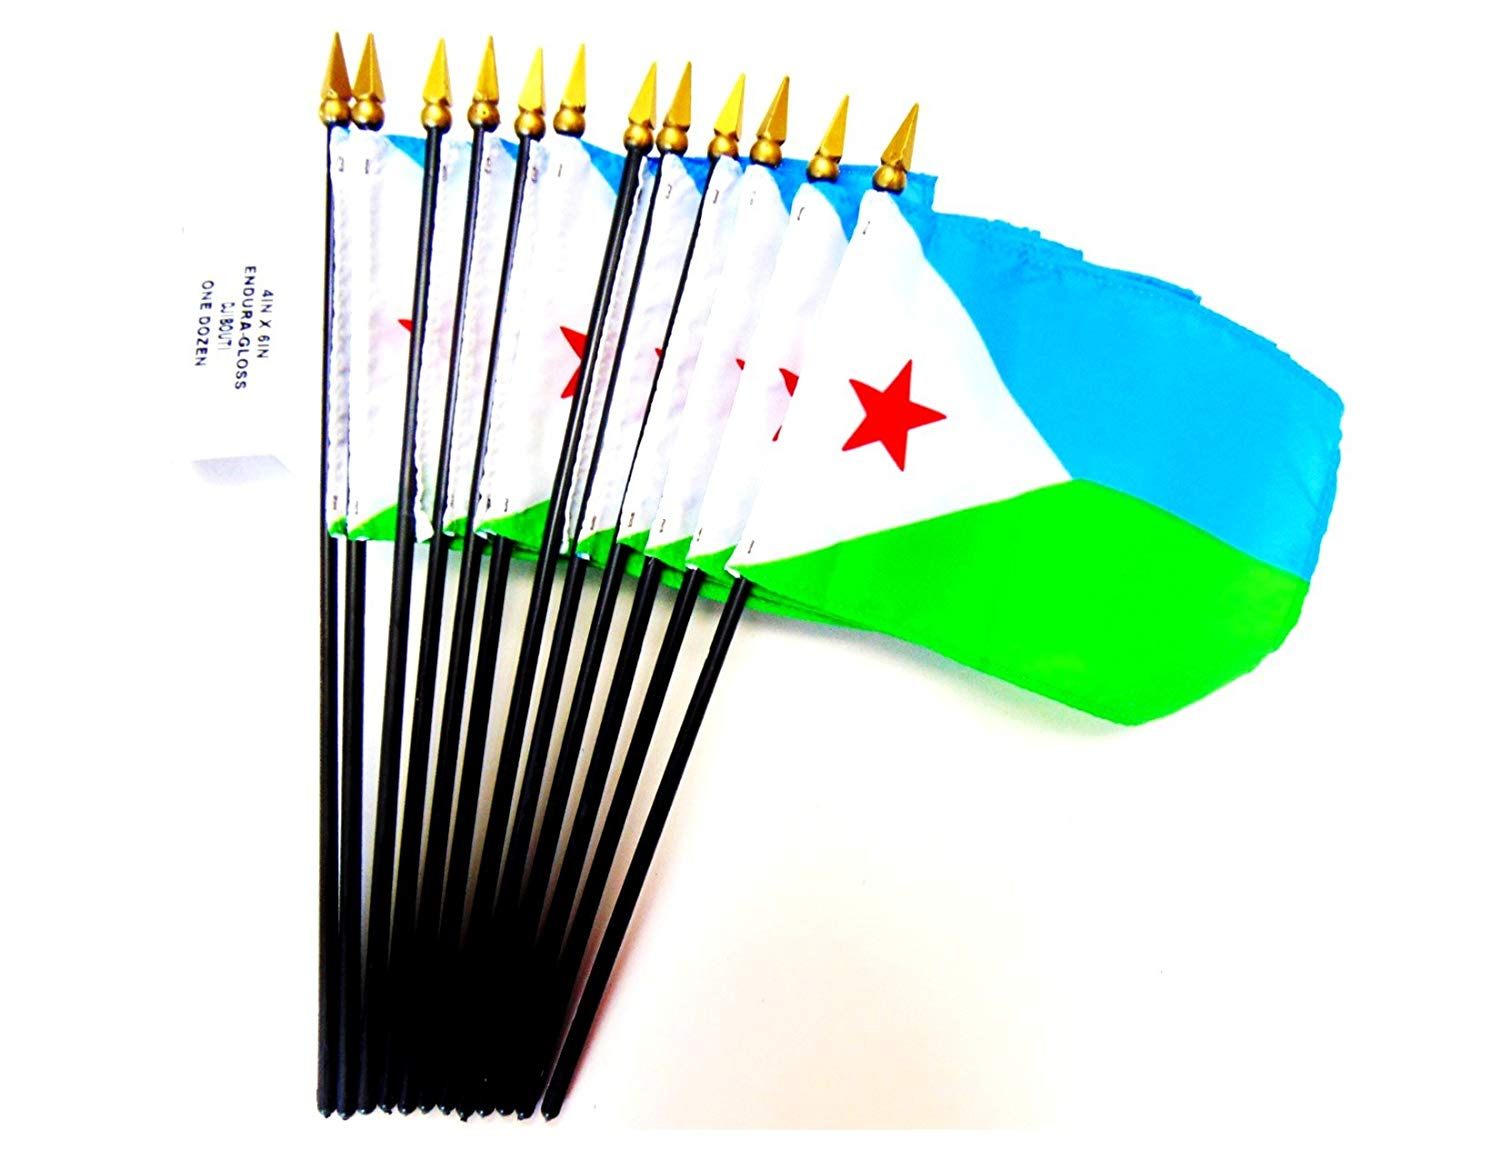 "MADE IN USA!! Box of 12 Djibouti 4""x6"" Miniature Desk & Table Flags; 12 American Made Small Mini Djibouti Flags in a Custom Made Cardboard Box Specifically Made for These Flags"